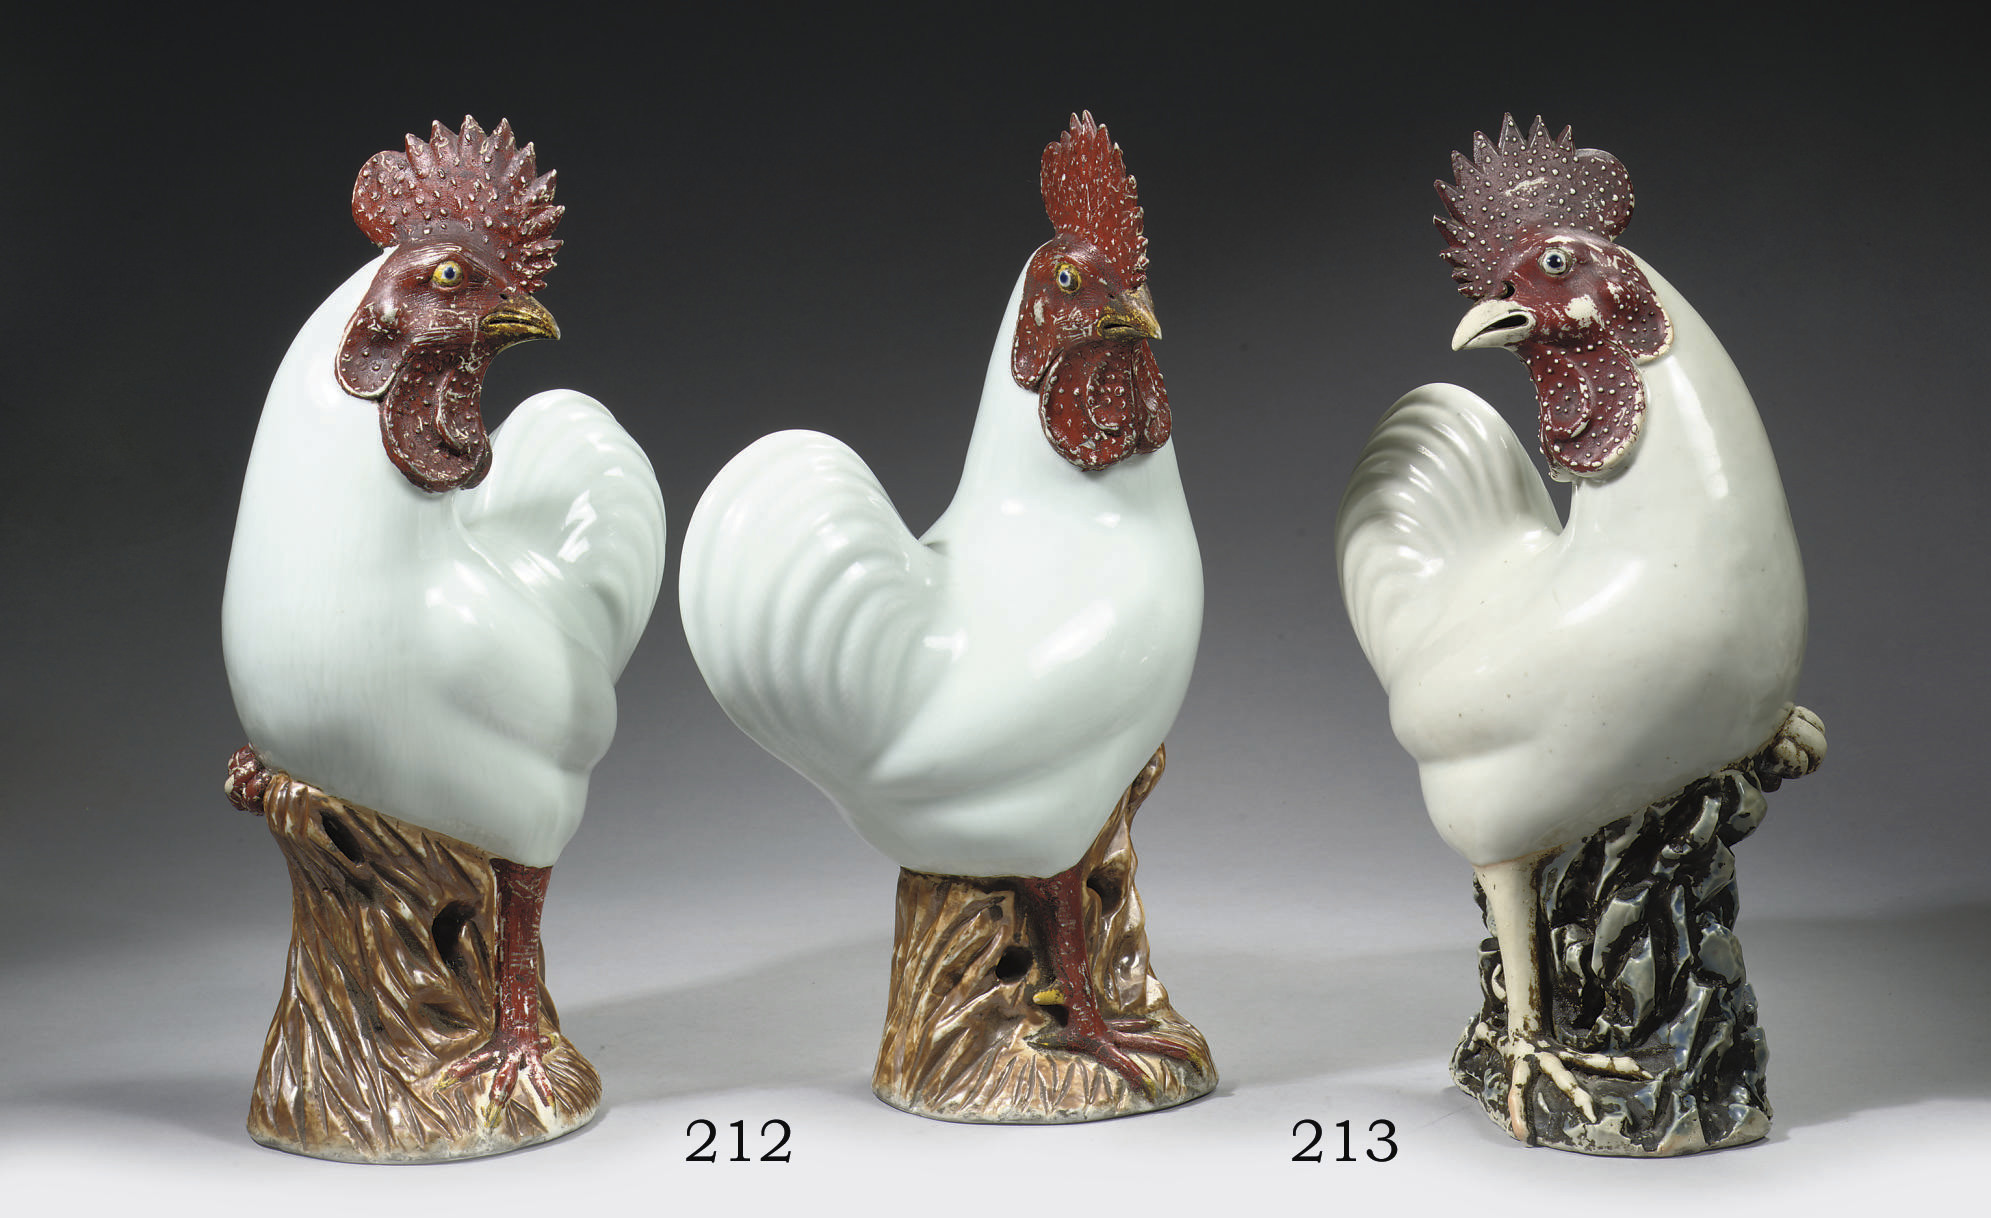 A pair of large models of cock